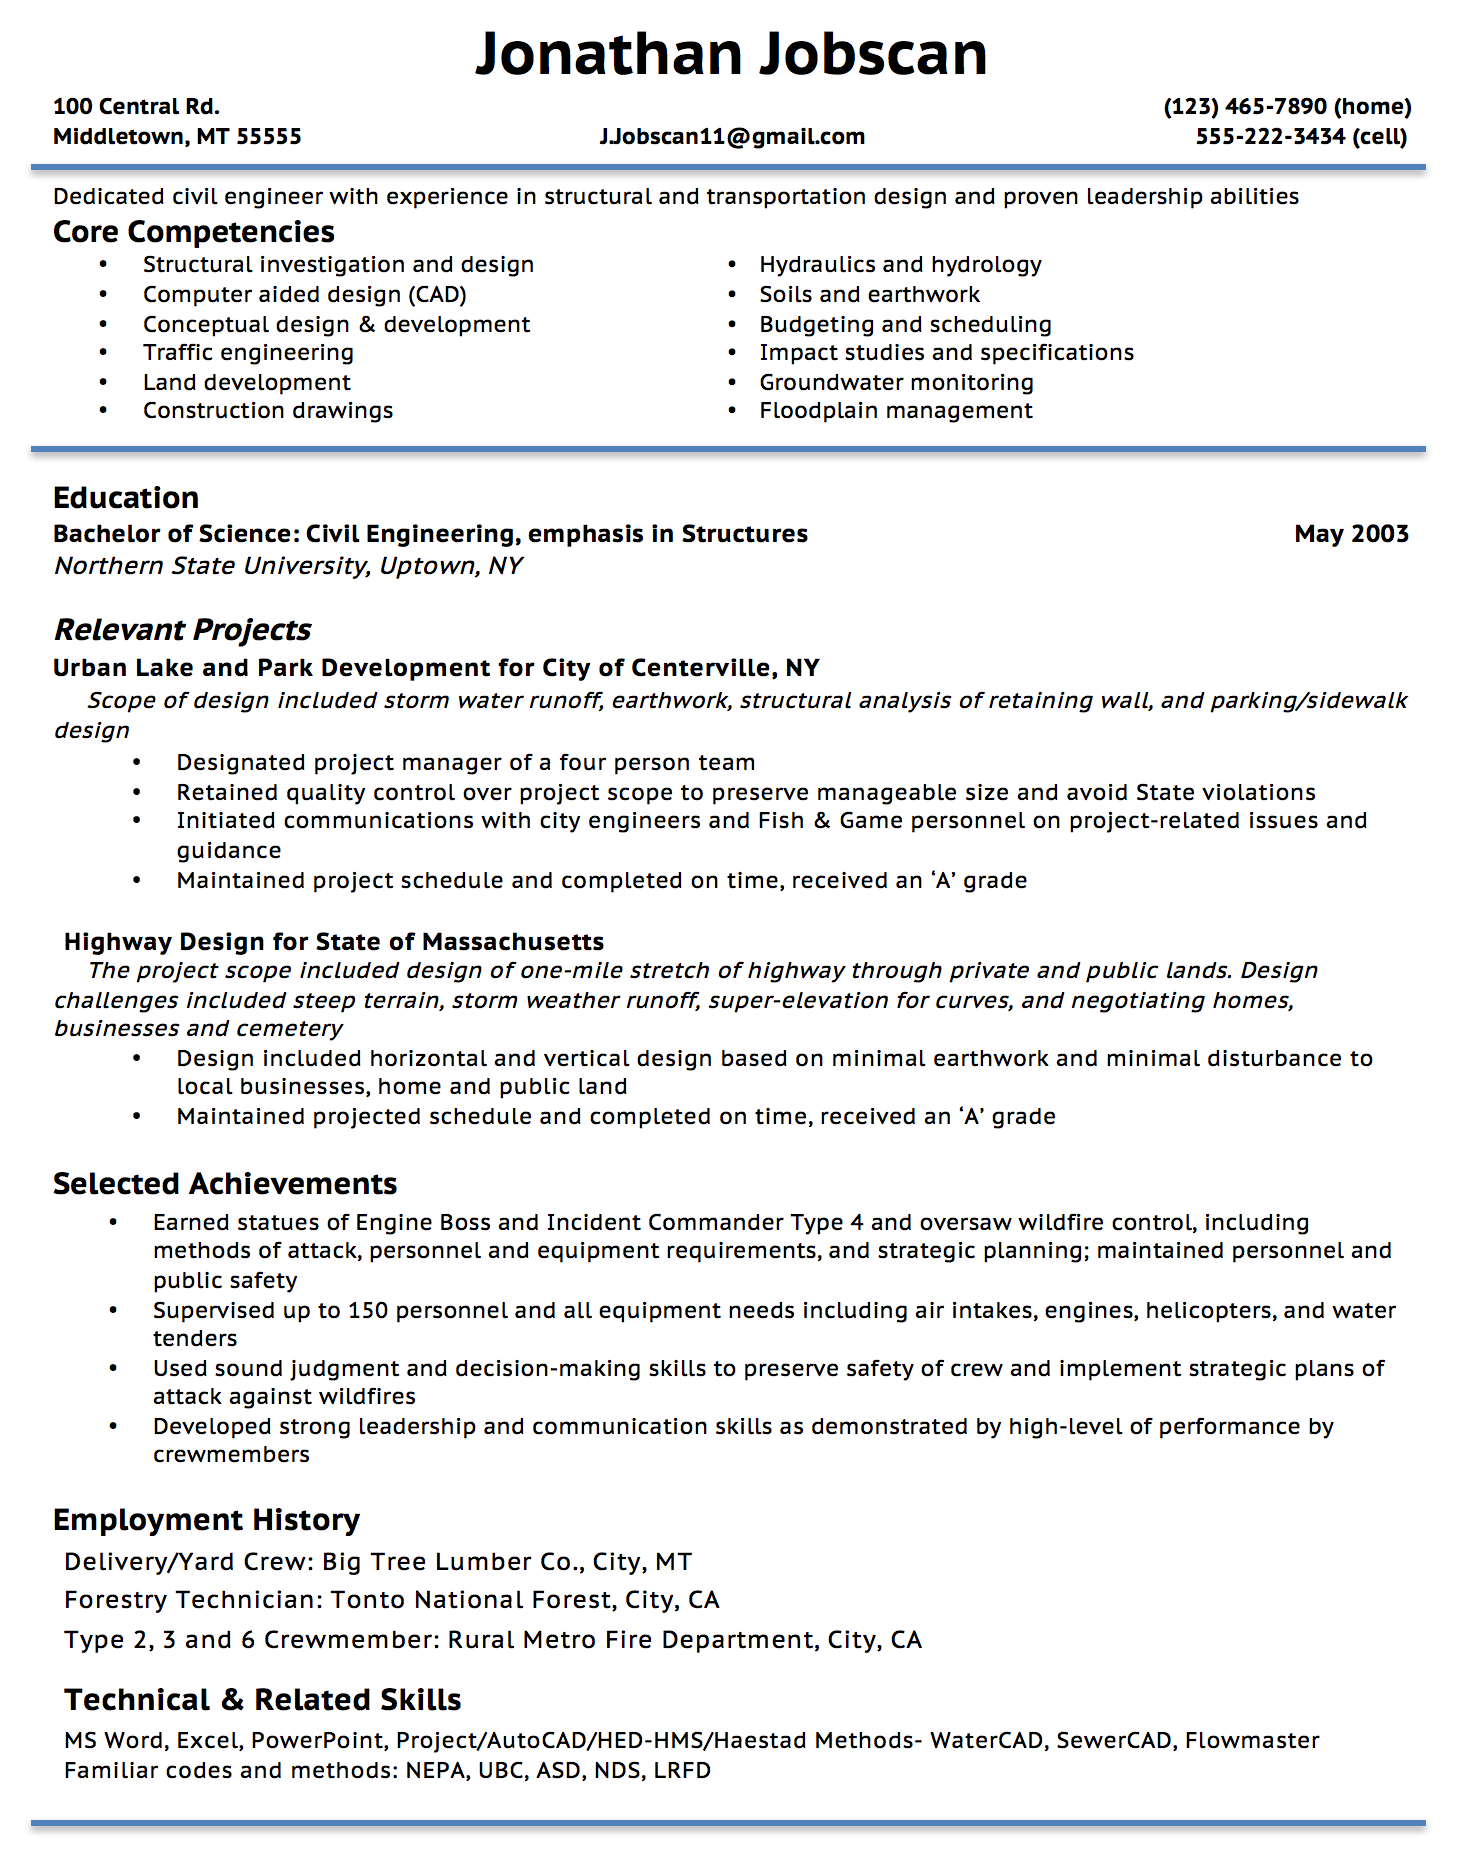 Picnictoimpeachus  Nice Resume Writing Guide  Jobscan With Fair Example Of A Functional Resume Format With Adorable Soft Skills Resume Also Skills To Add To A Resume In Addition Include Gpa On Resume And Vet Assistant Resume As Well As Google Doc Resume Templates Additionally How To Do A Resume Paper From Jobscanco With Picnictoimpeachus  Fair Resume Writing Guide  Jobscan With Adorable Example Of A Functional Resume Format And Nice Soft Skills Resume Also Skills To Add To A Resume In Addition Include Gpa On Resume From Jobscanco